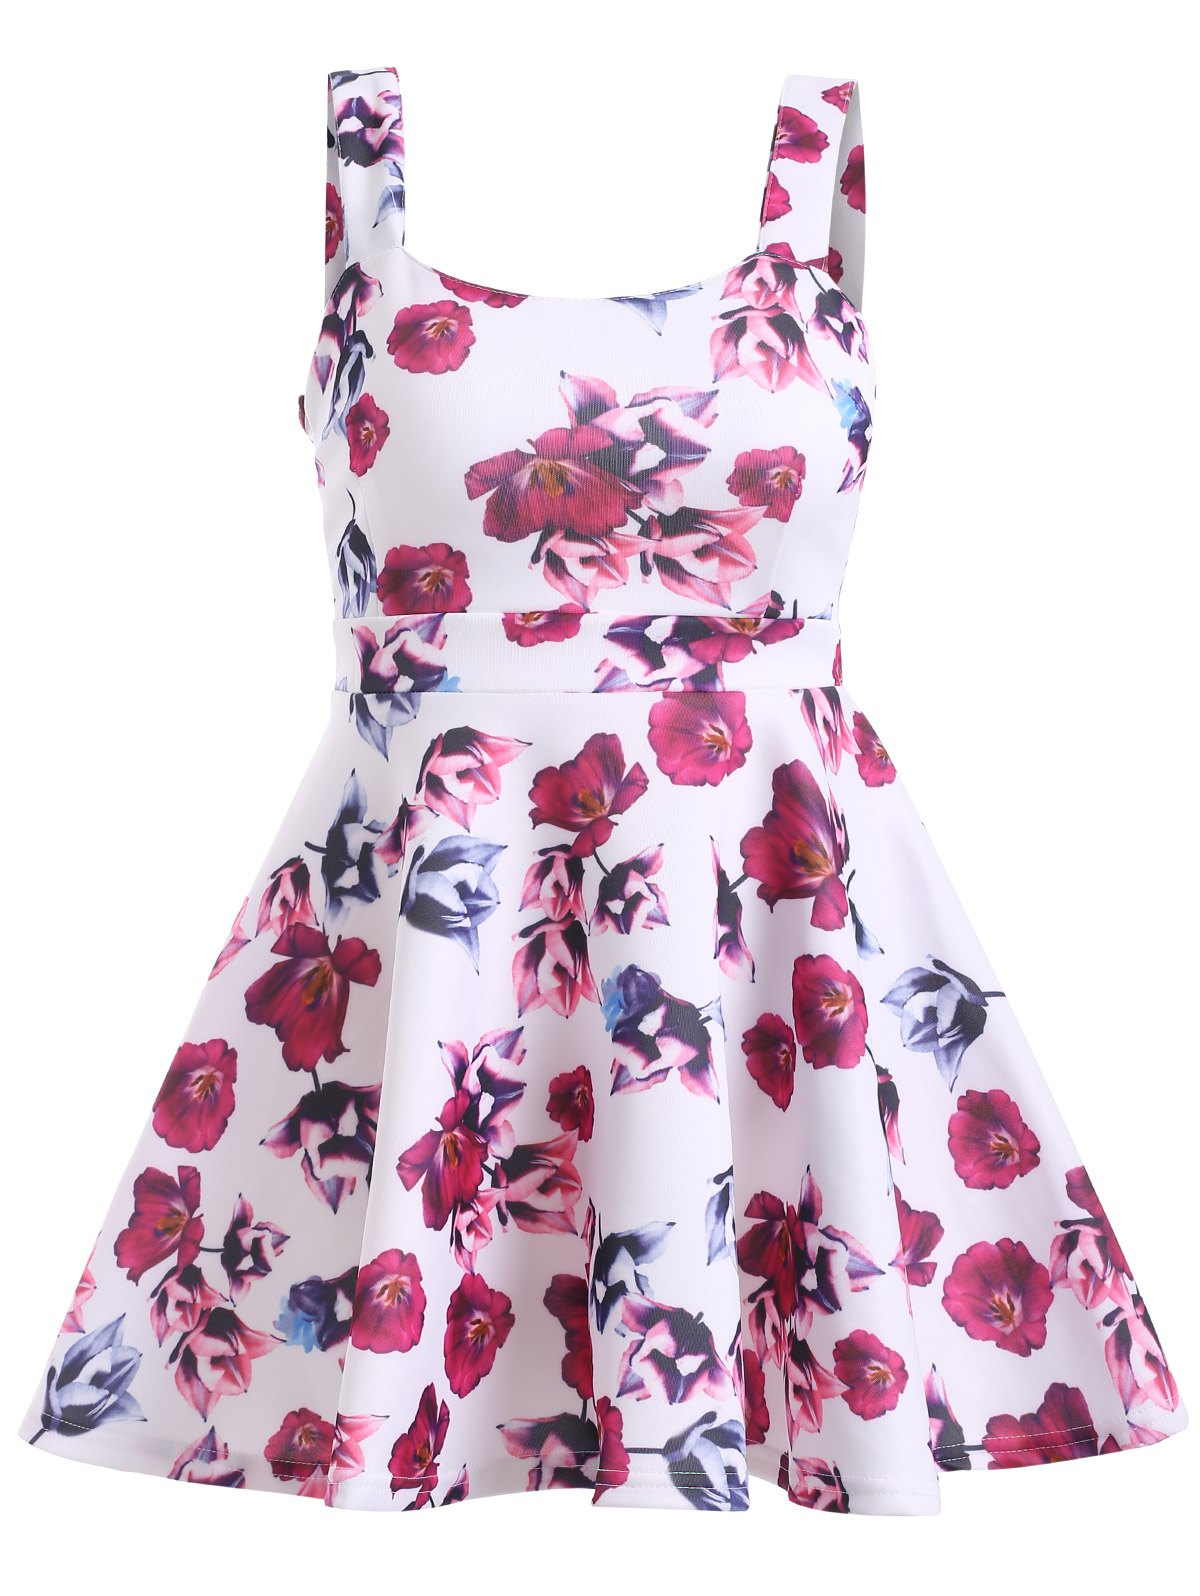 Graceful Women's Backless Floral Print Flare Dress